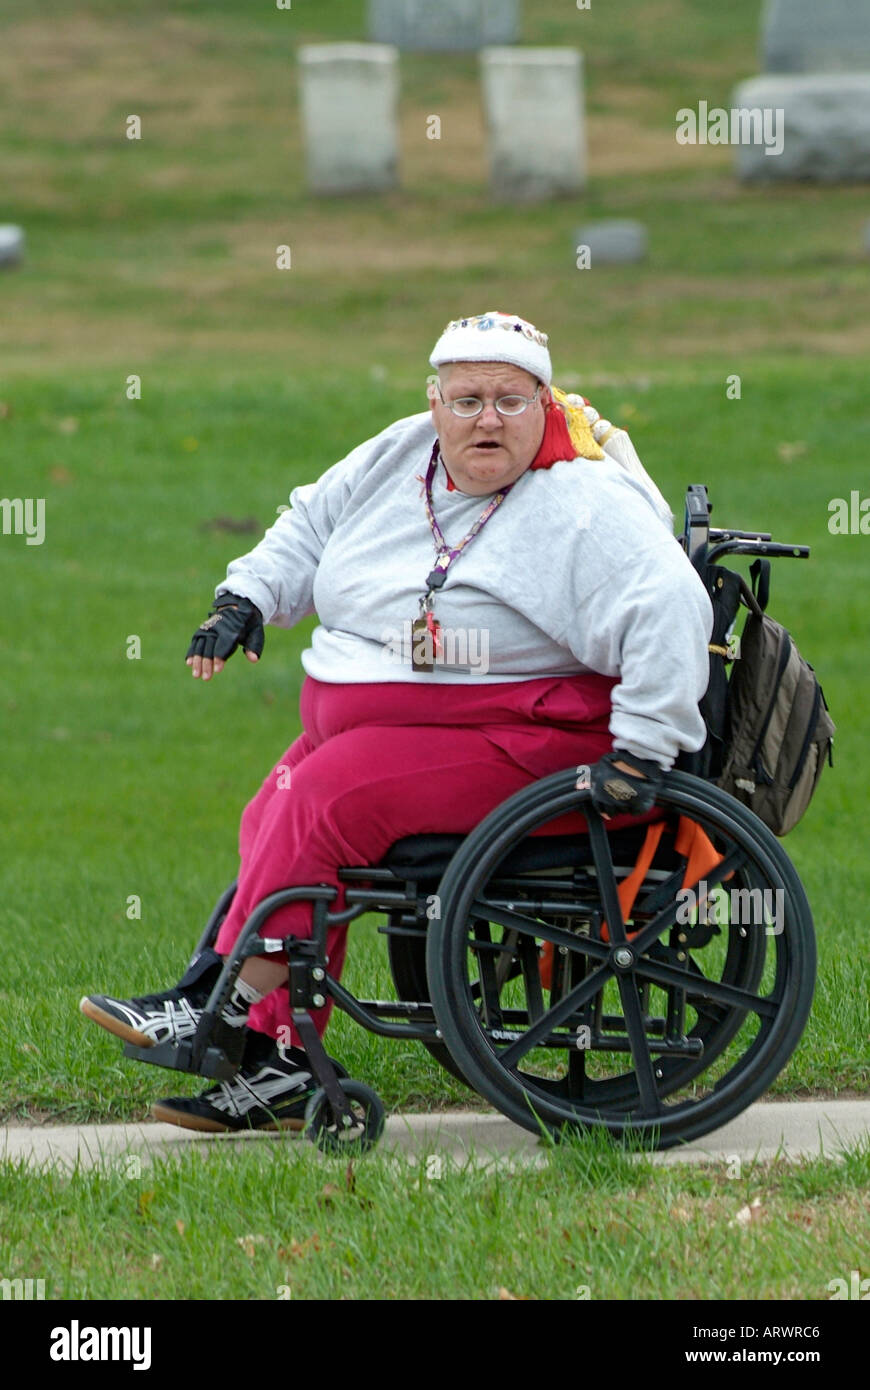 obese-overweight-fat-female-is-handicapp